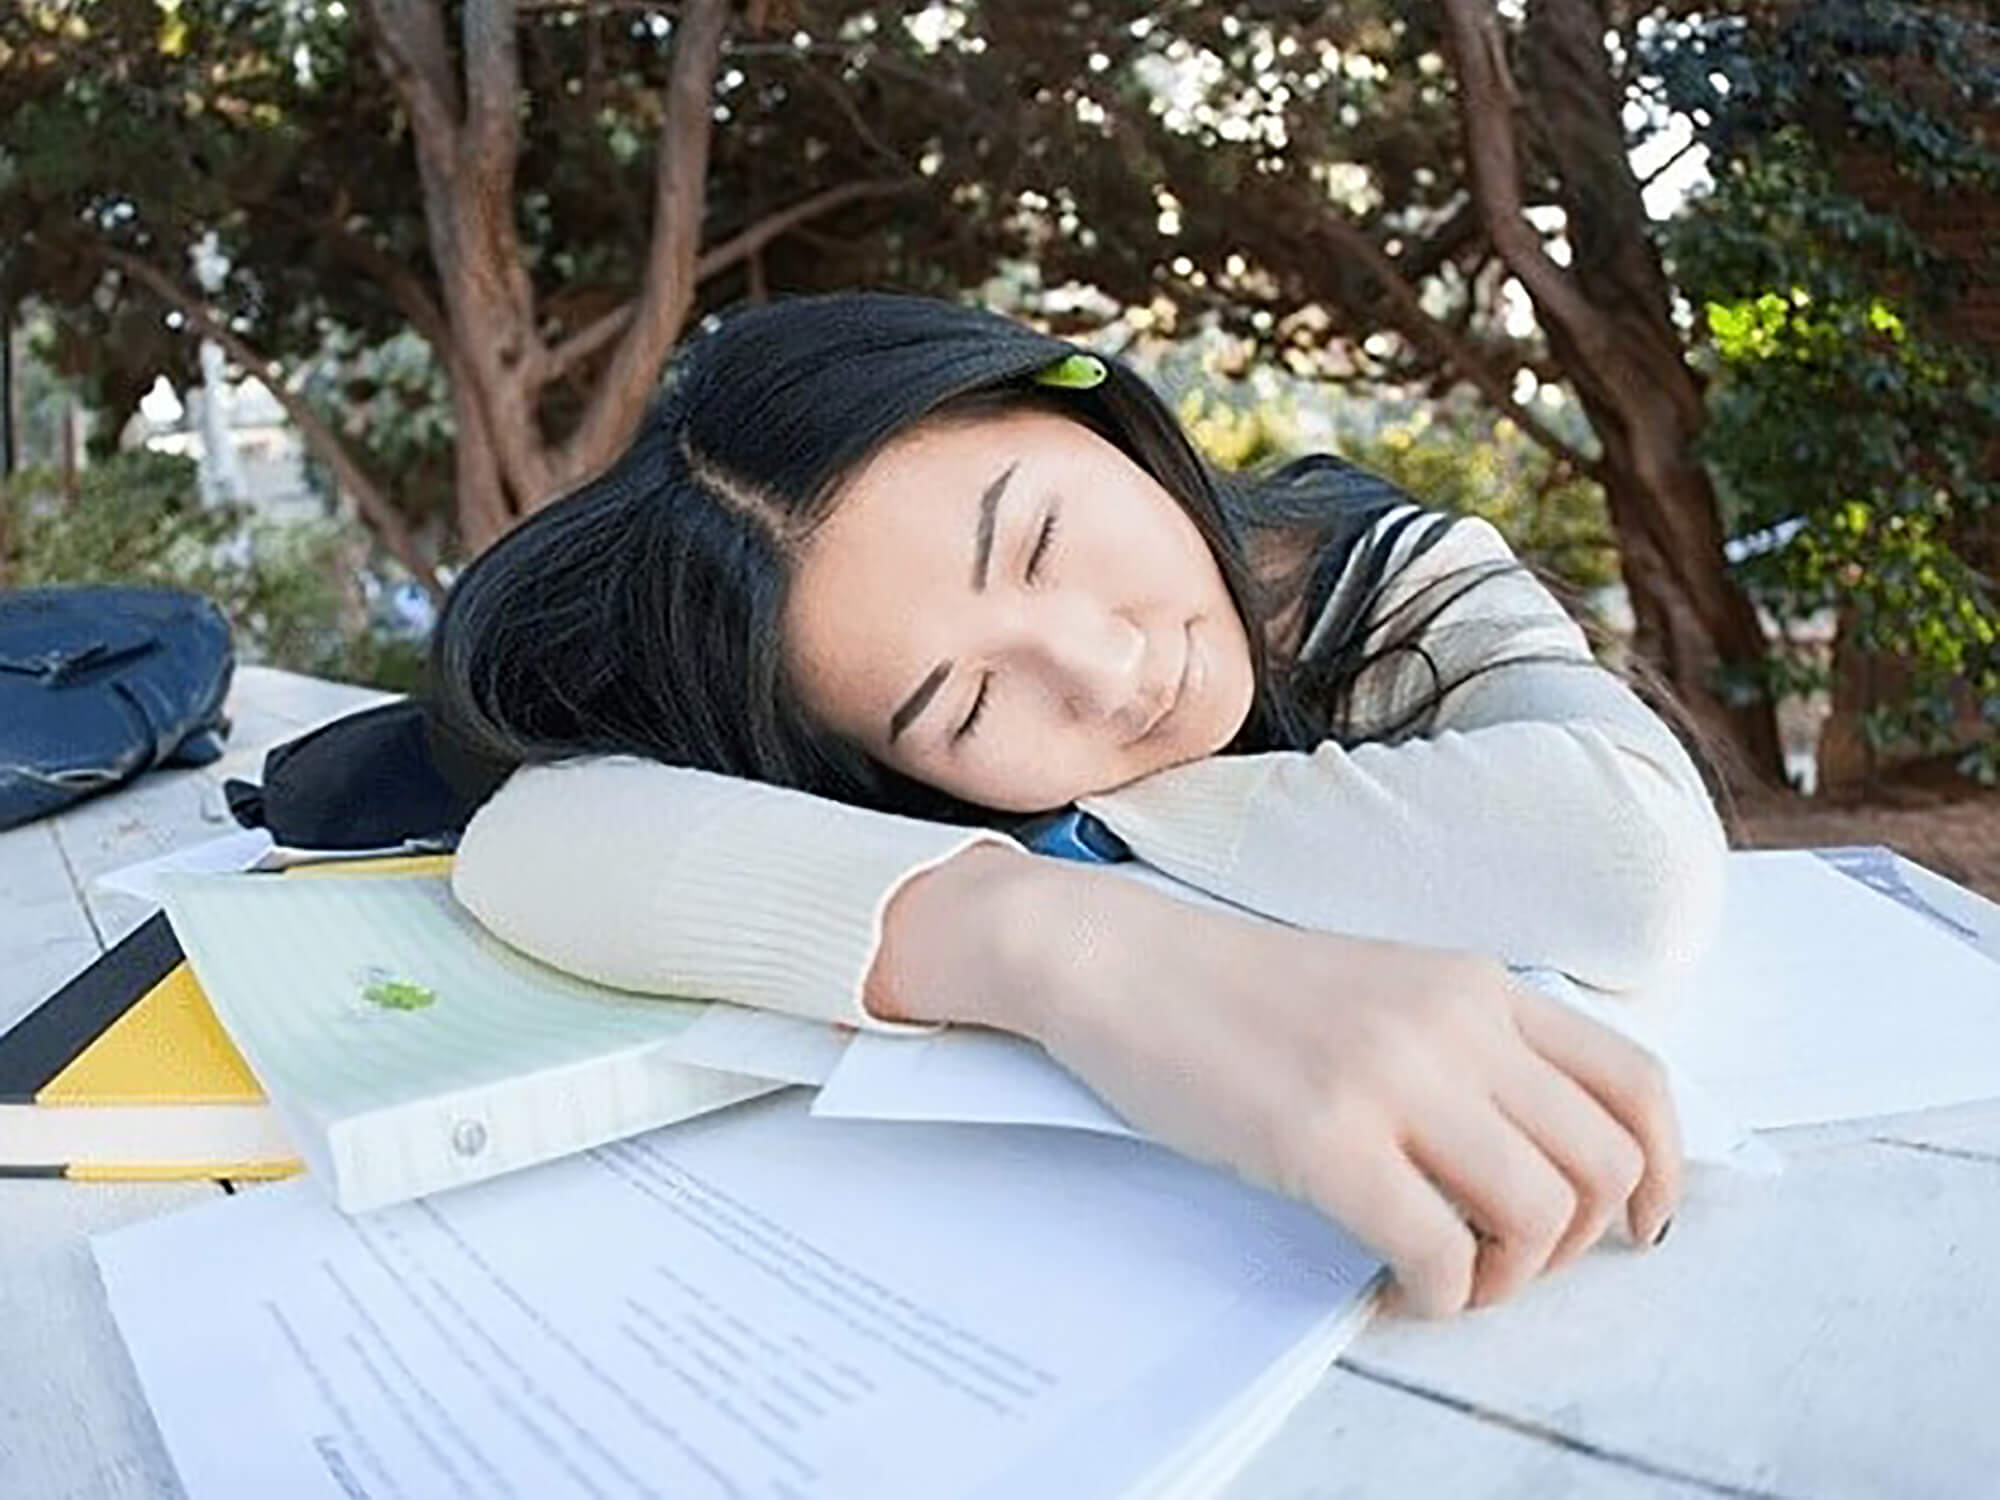 Student rests their head on a table covered in papers.